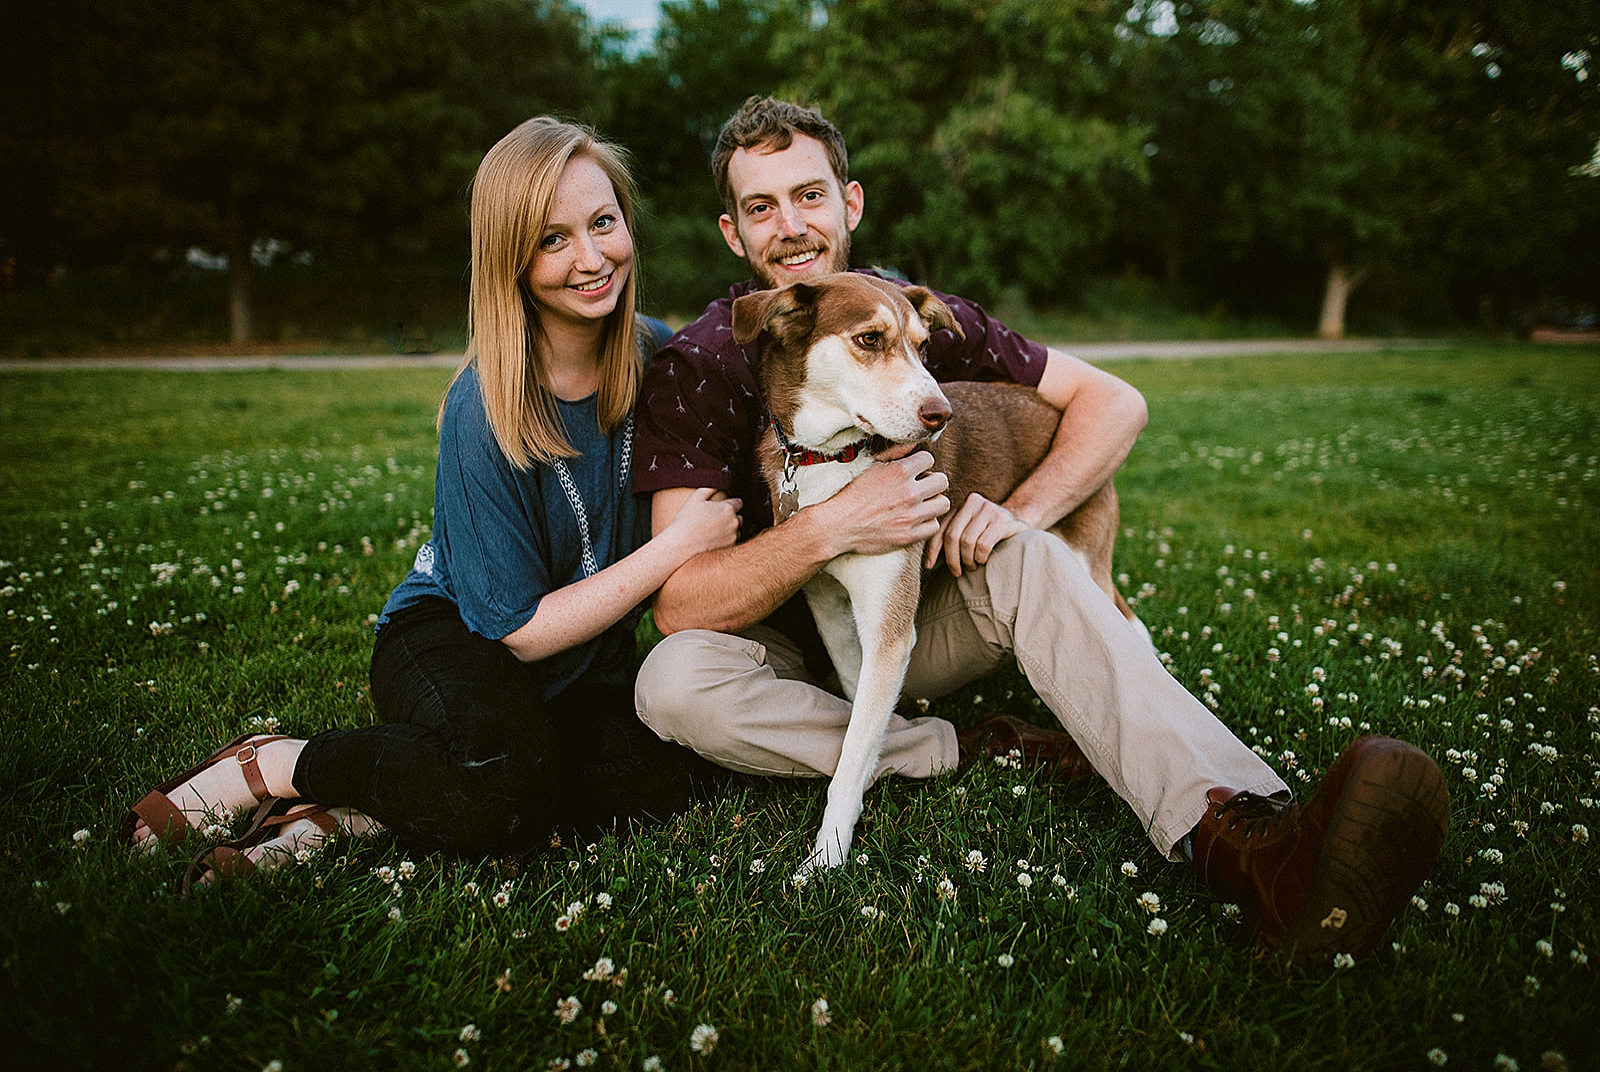 Couple in park with dog Downtown Denver Engagement Photos by Matthew Speck